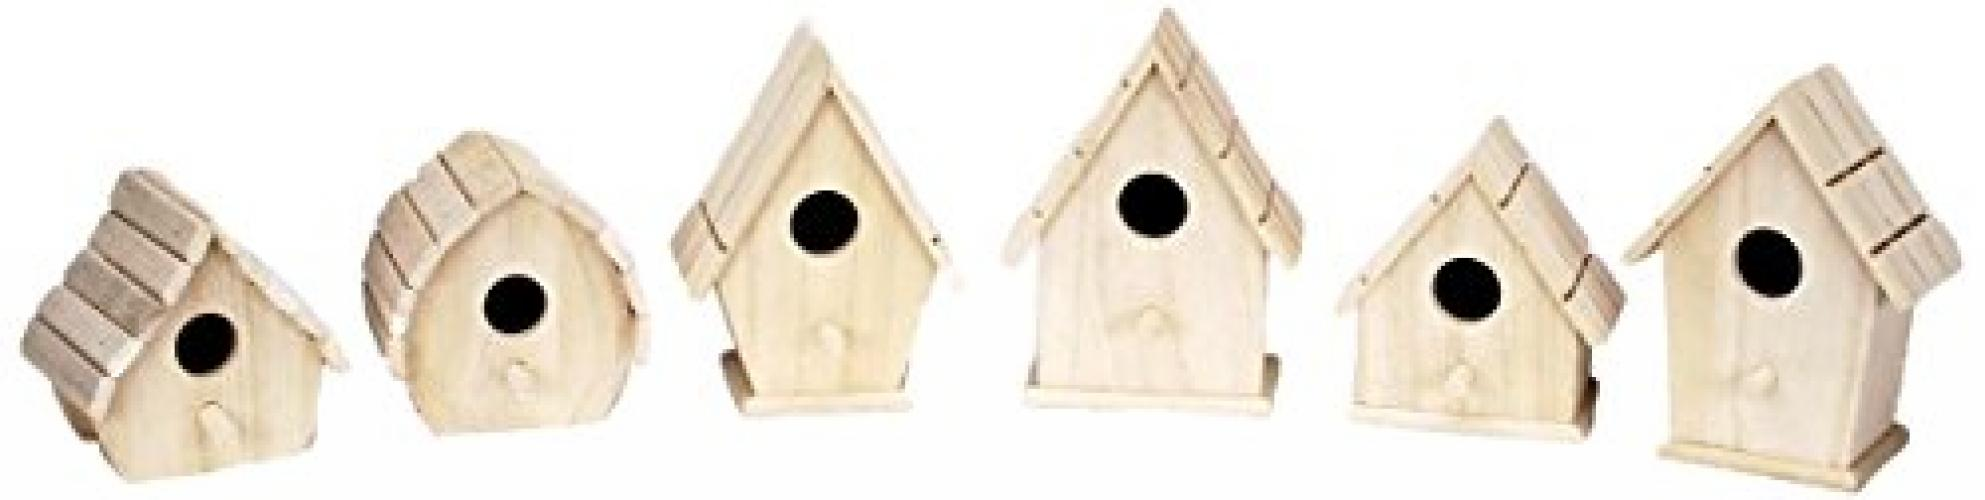 Darice 9180-08 Value Promo Wooden Sparrow Birdhouse, Assorted 1 Piece by Darice